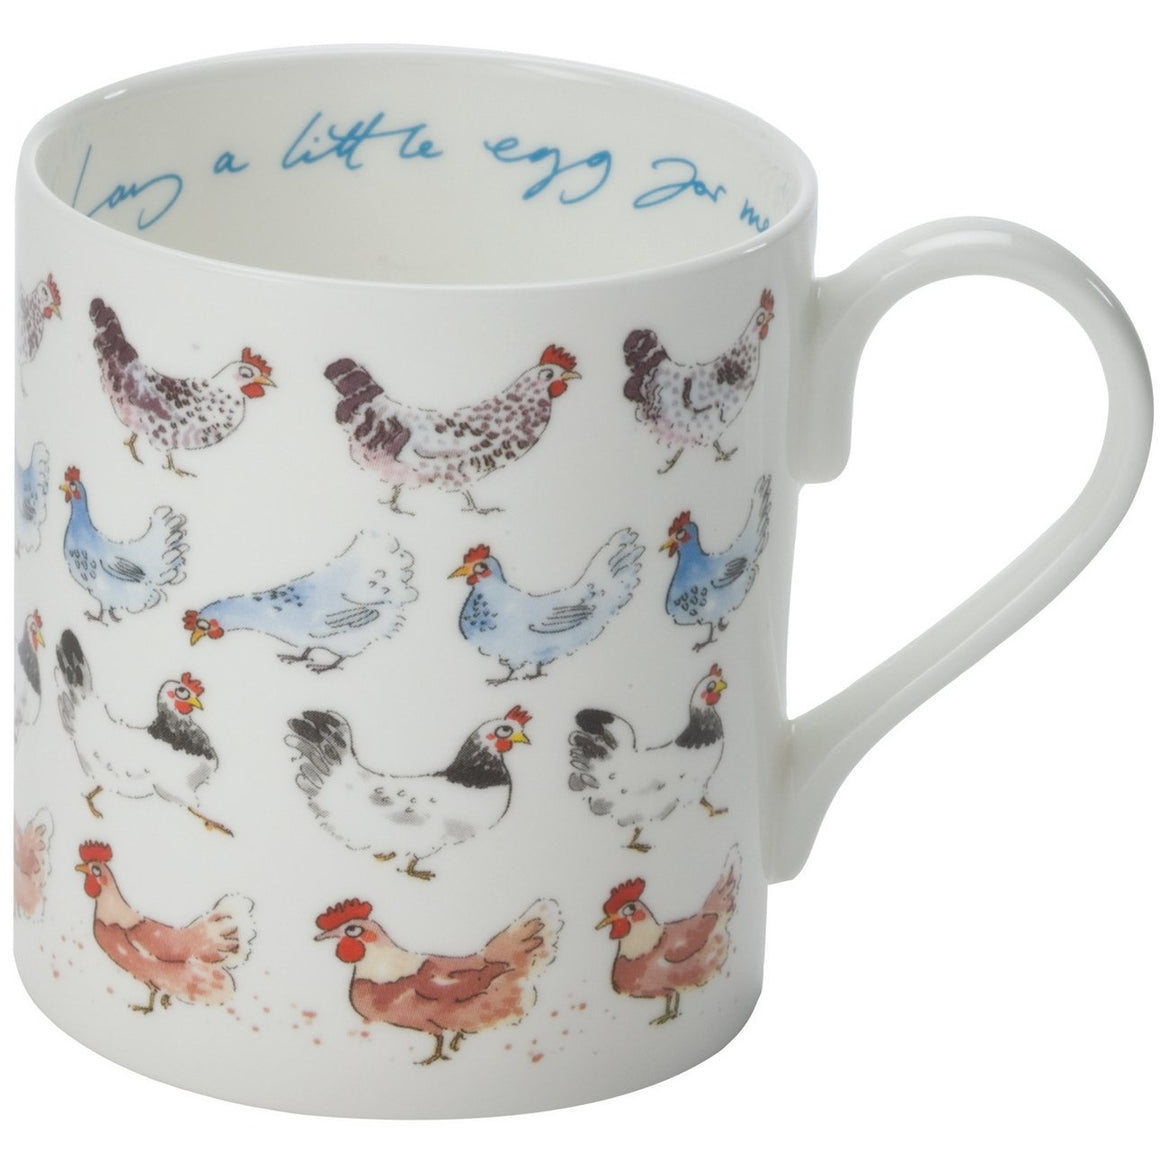 Sophie Allport 'Lay a Little Egg' Mug